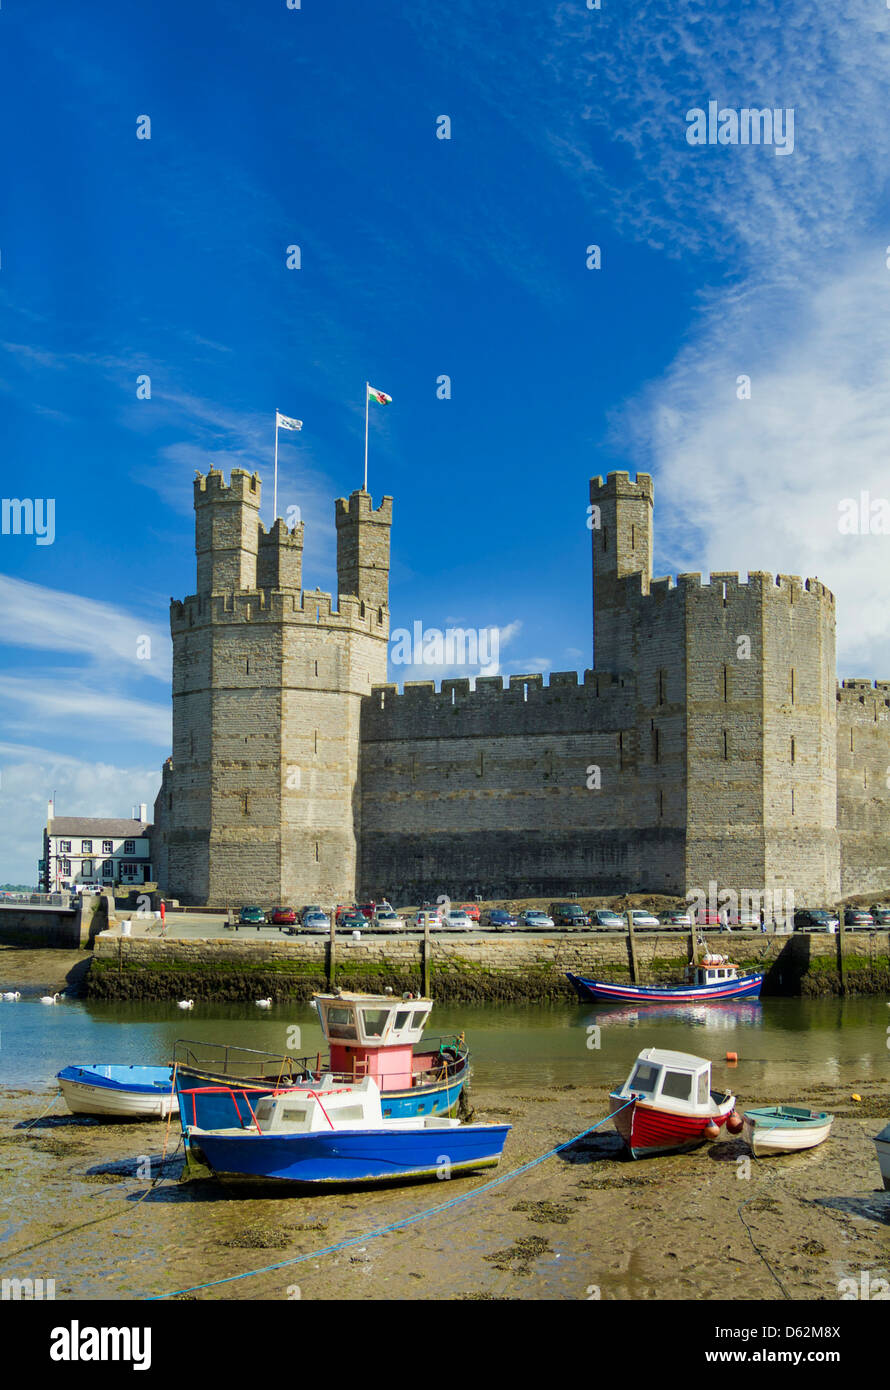 Towers and battlements of Caernarfon Castle a medieval monument in North Wales UK GB EU Europe Stock Photo